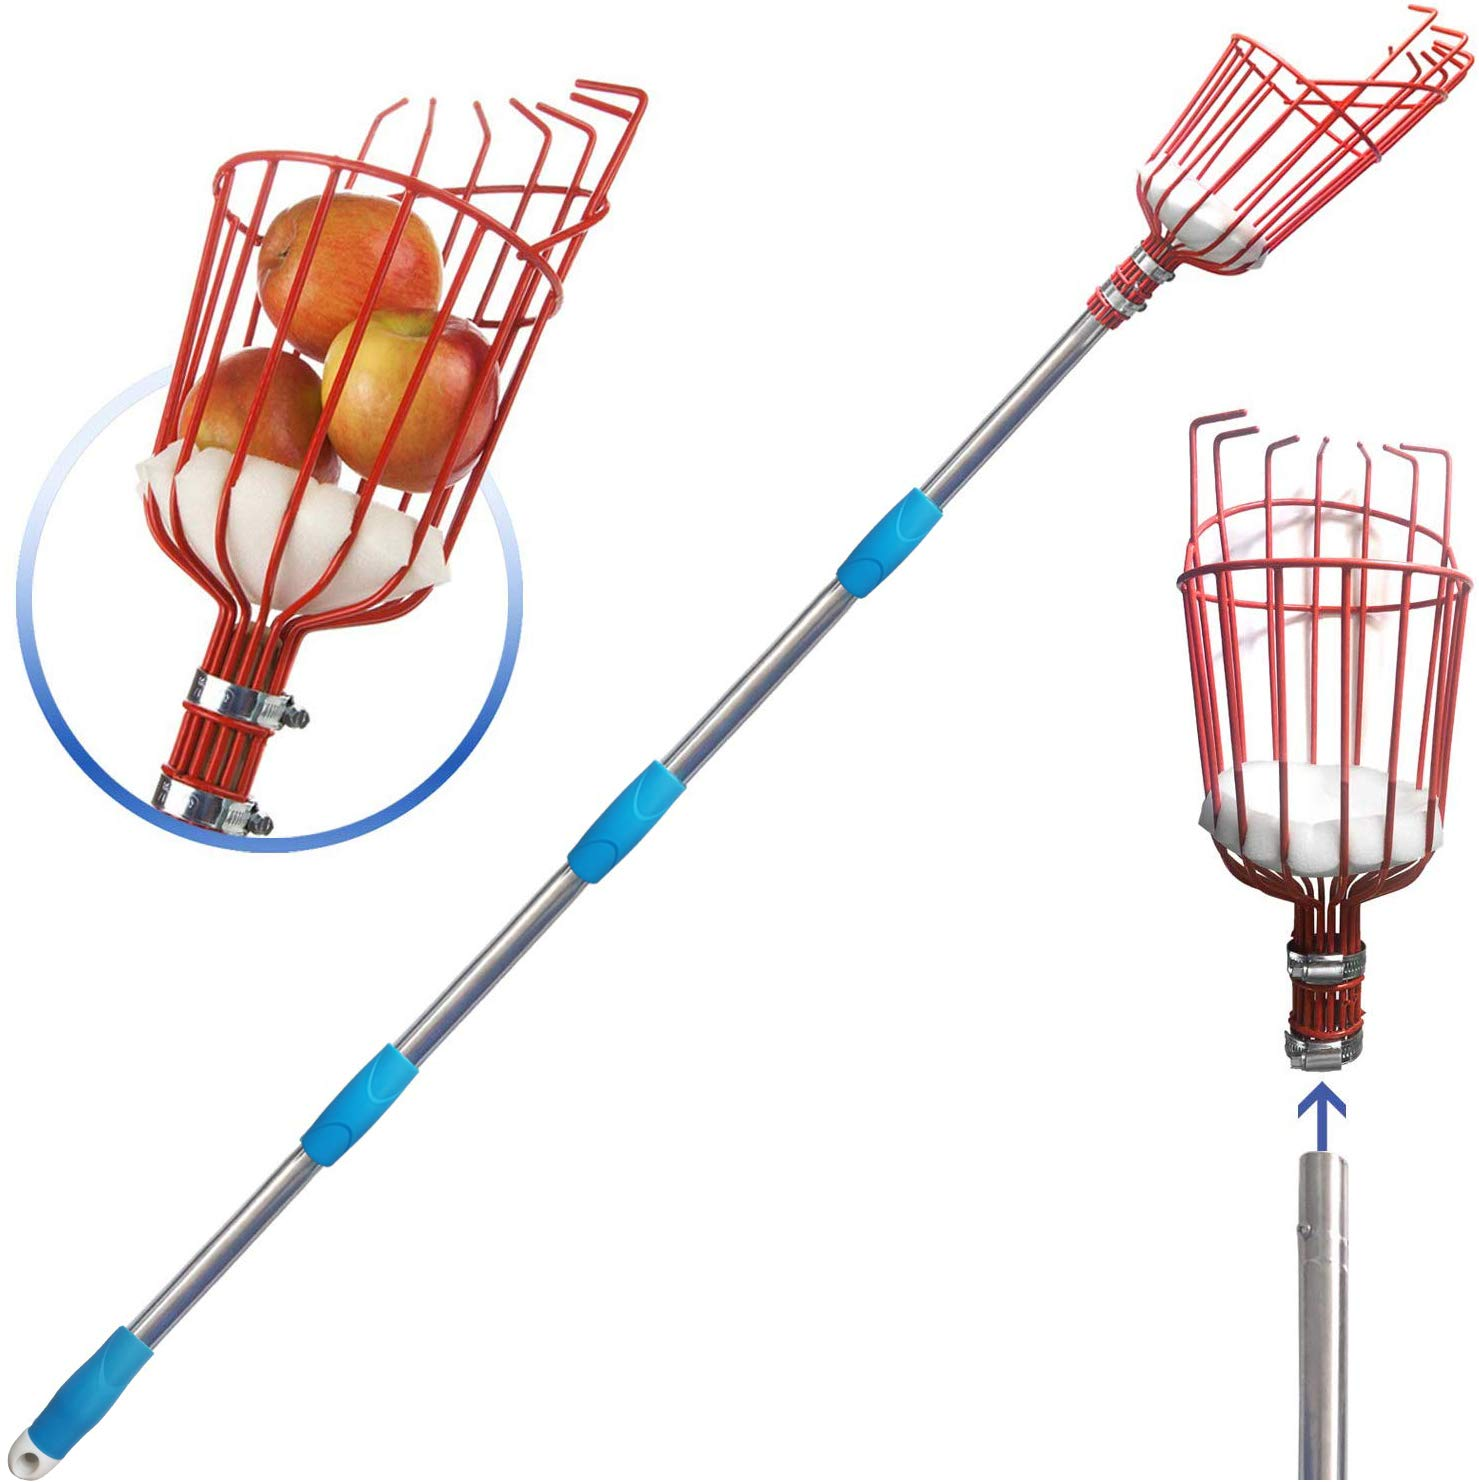 COCONUT Fruit Picker Tool, Fruit Picker with Basket and Pole,Easy to Assemble Use Fruits Catcher Tree Picker for Getting Fruits 5.5ft